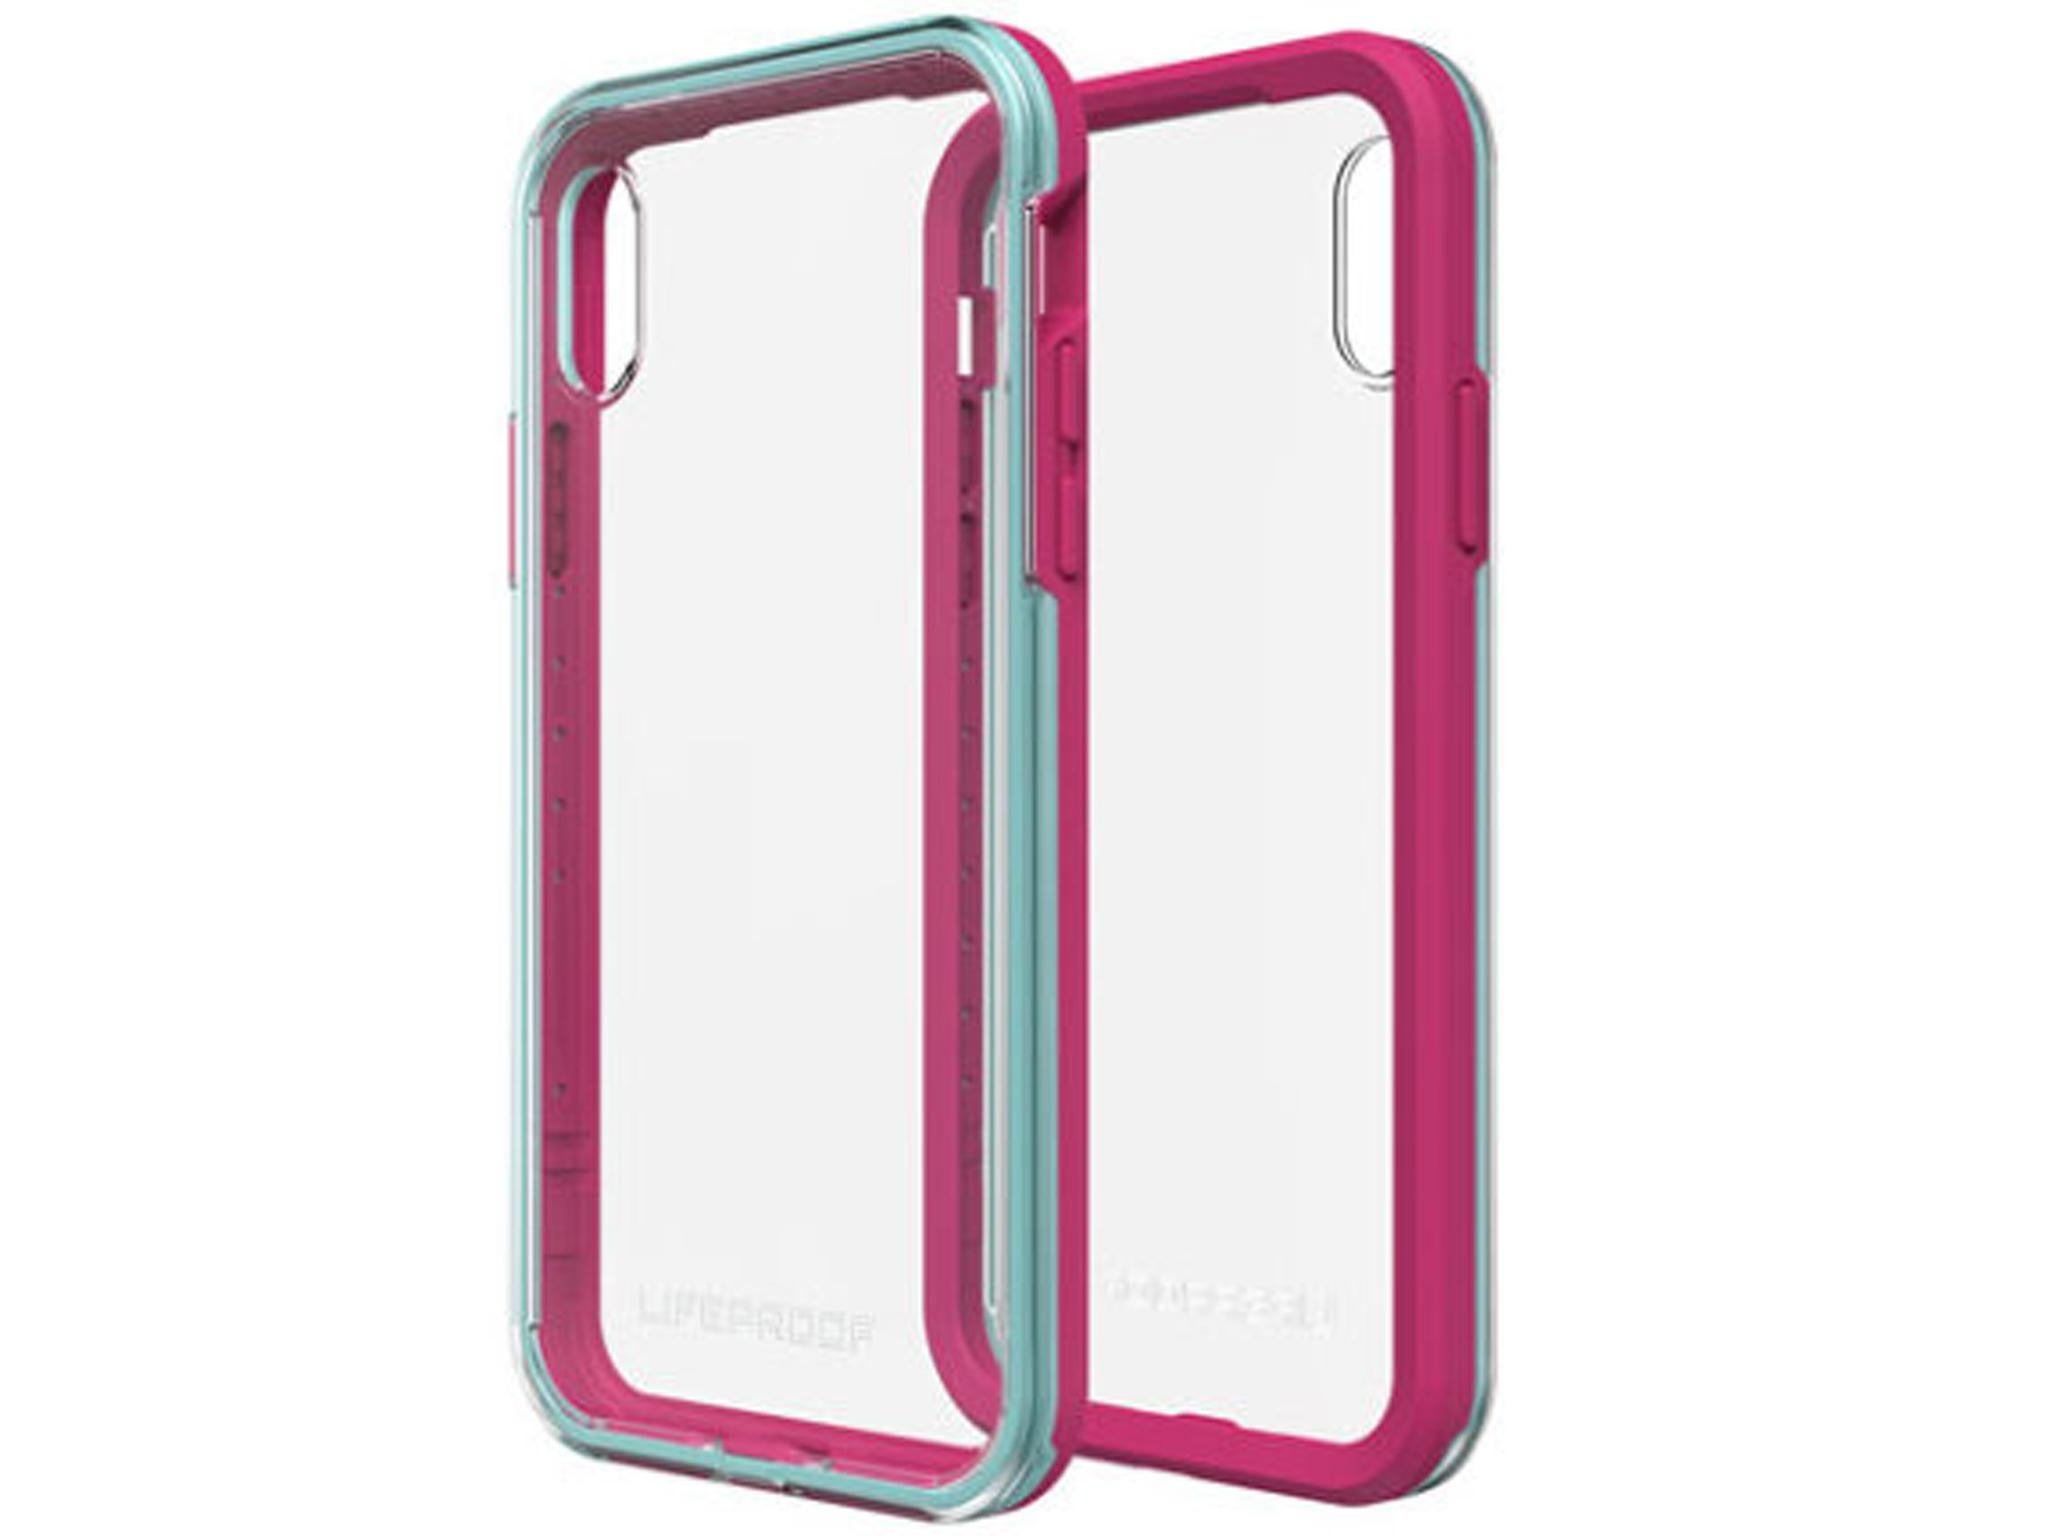 ipalm iphone 8 case